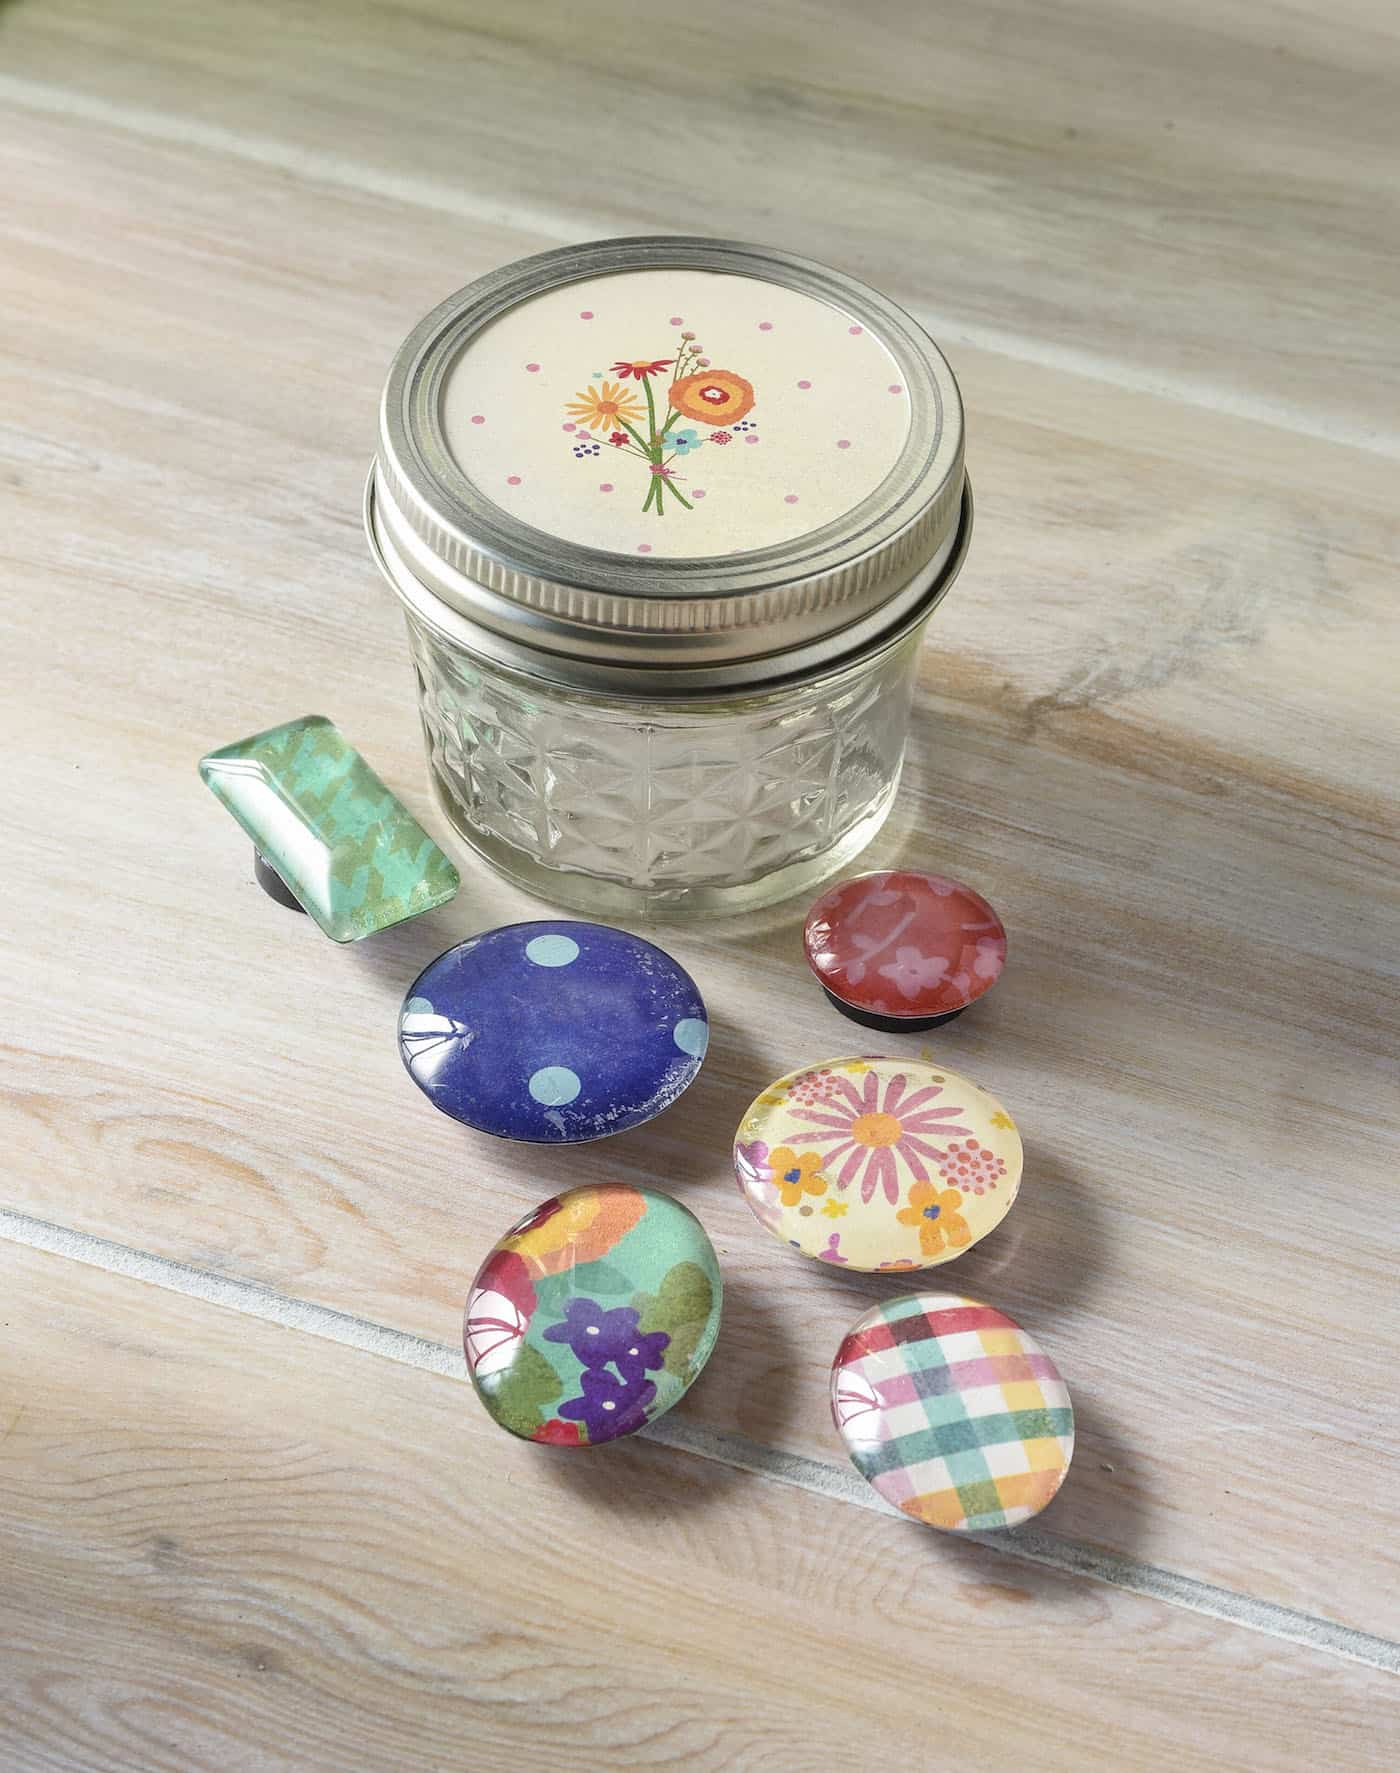 DIY magnets in a jar